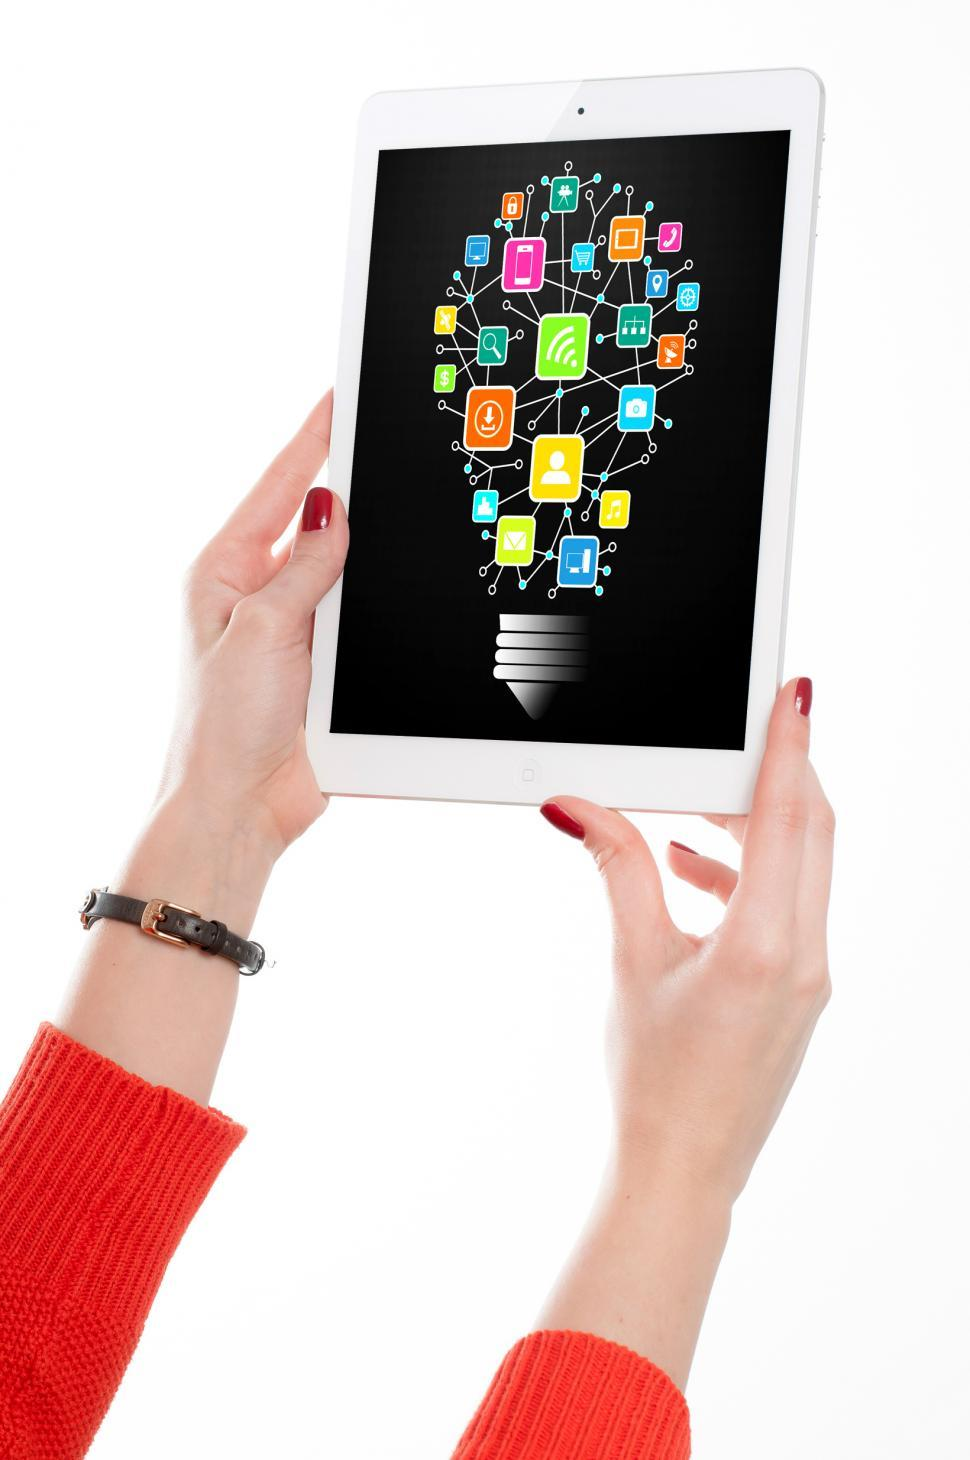 Download Free Stock HD Photo of Information Technology Idea on Tablet Online